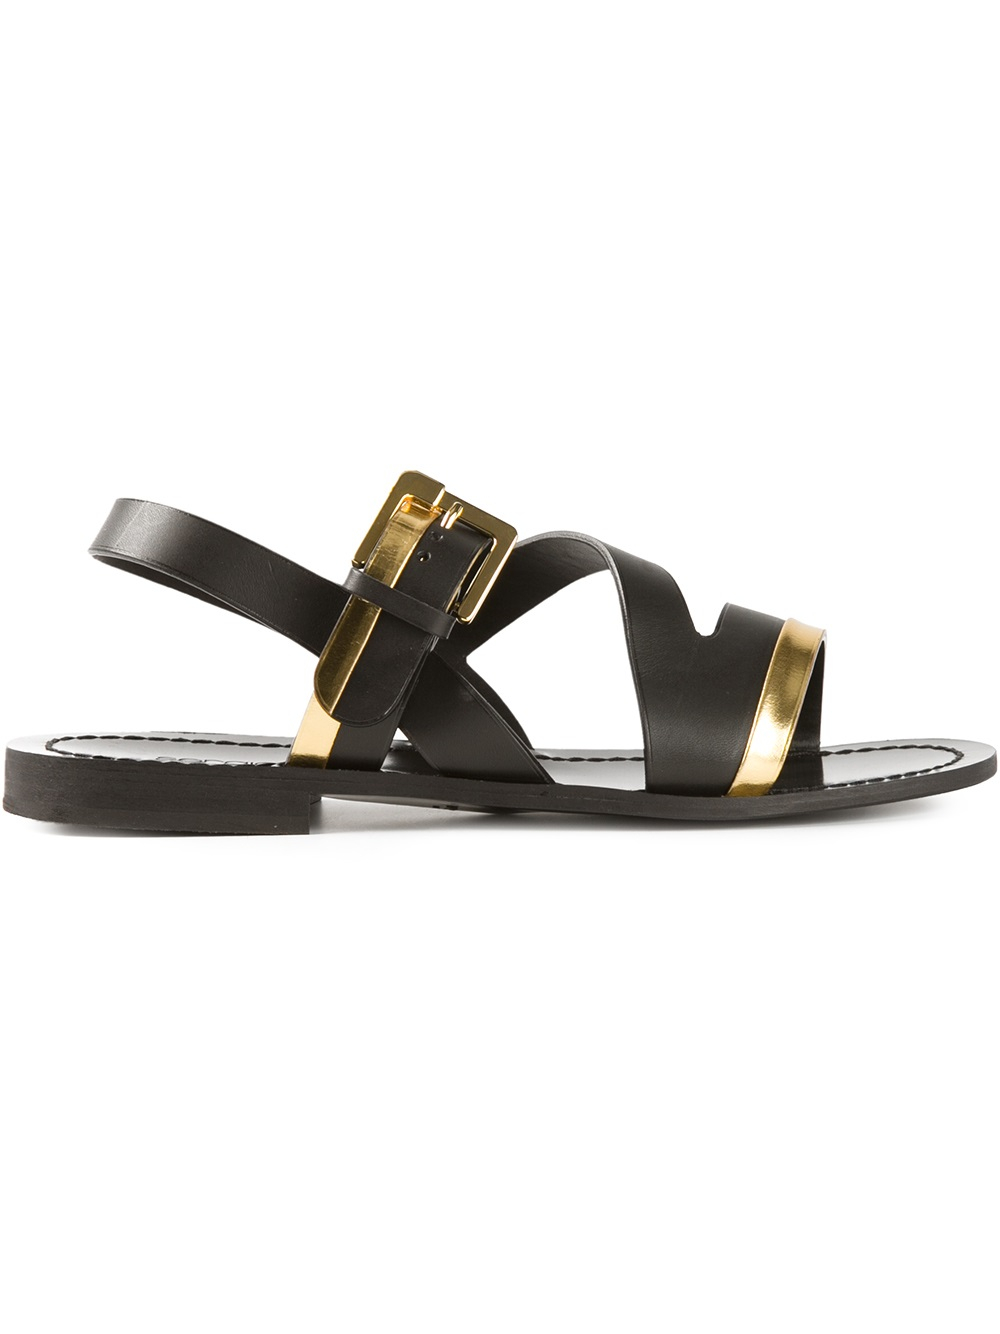 sergio rossi 39 z 39 sandals in black for men lyst. Black Bedroom Furniture Sets. Home Design Ideas